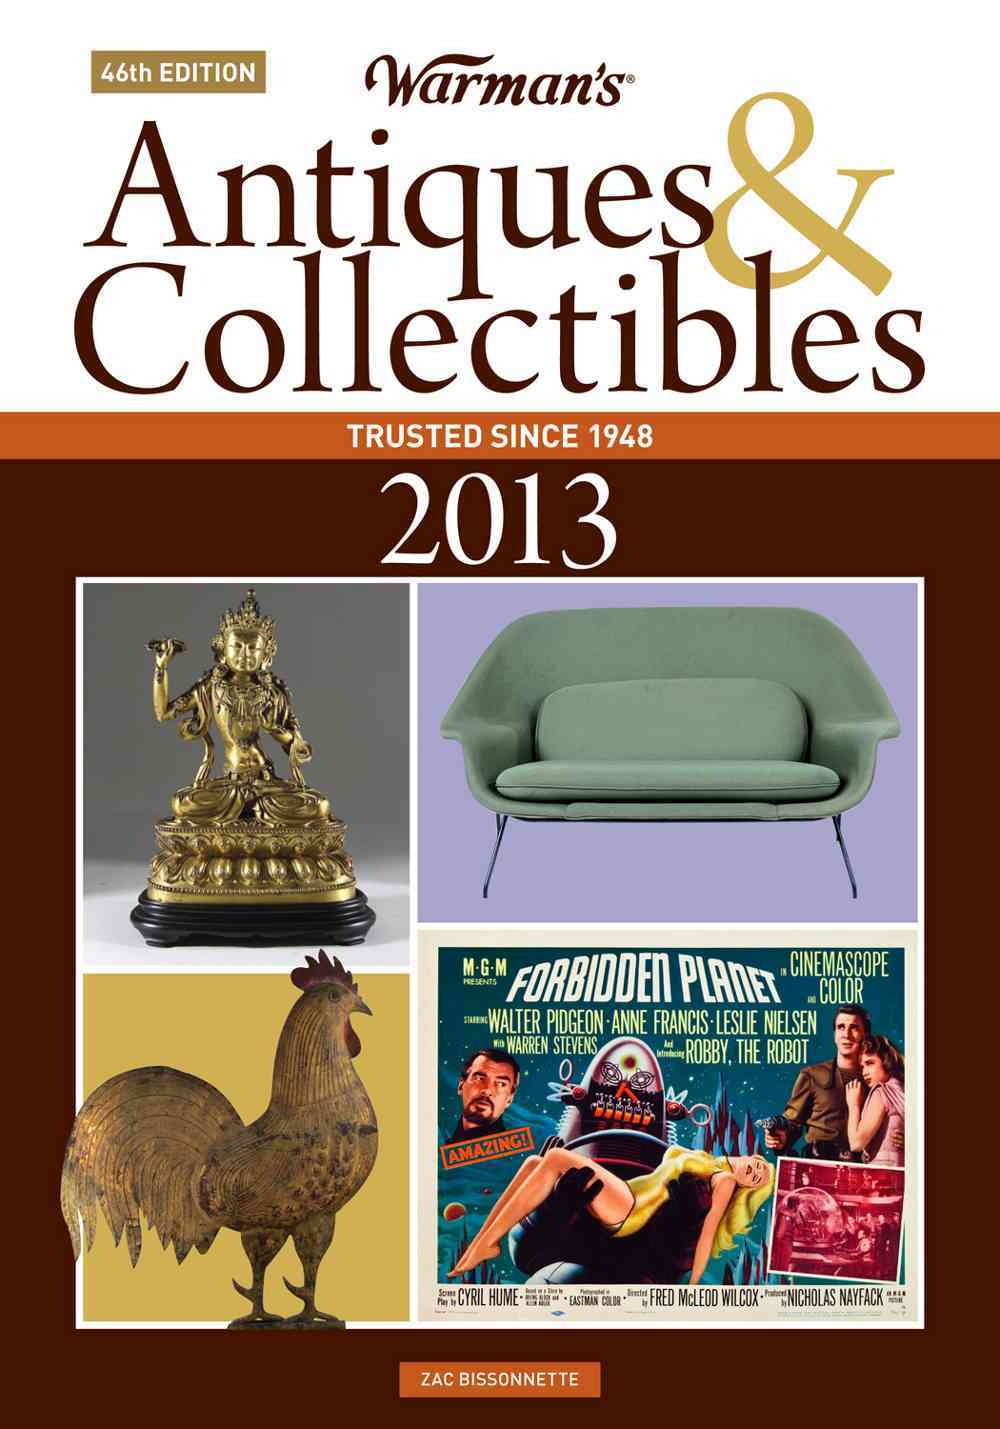 Warman's Antiques & Collectibles 2013